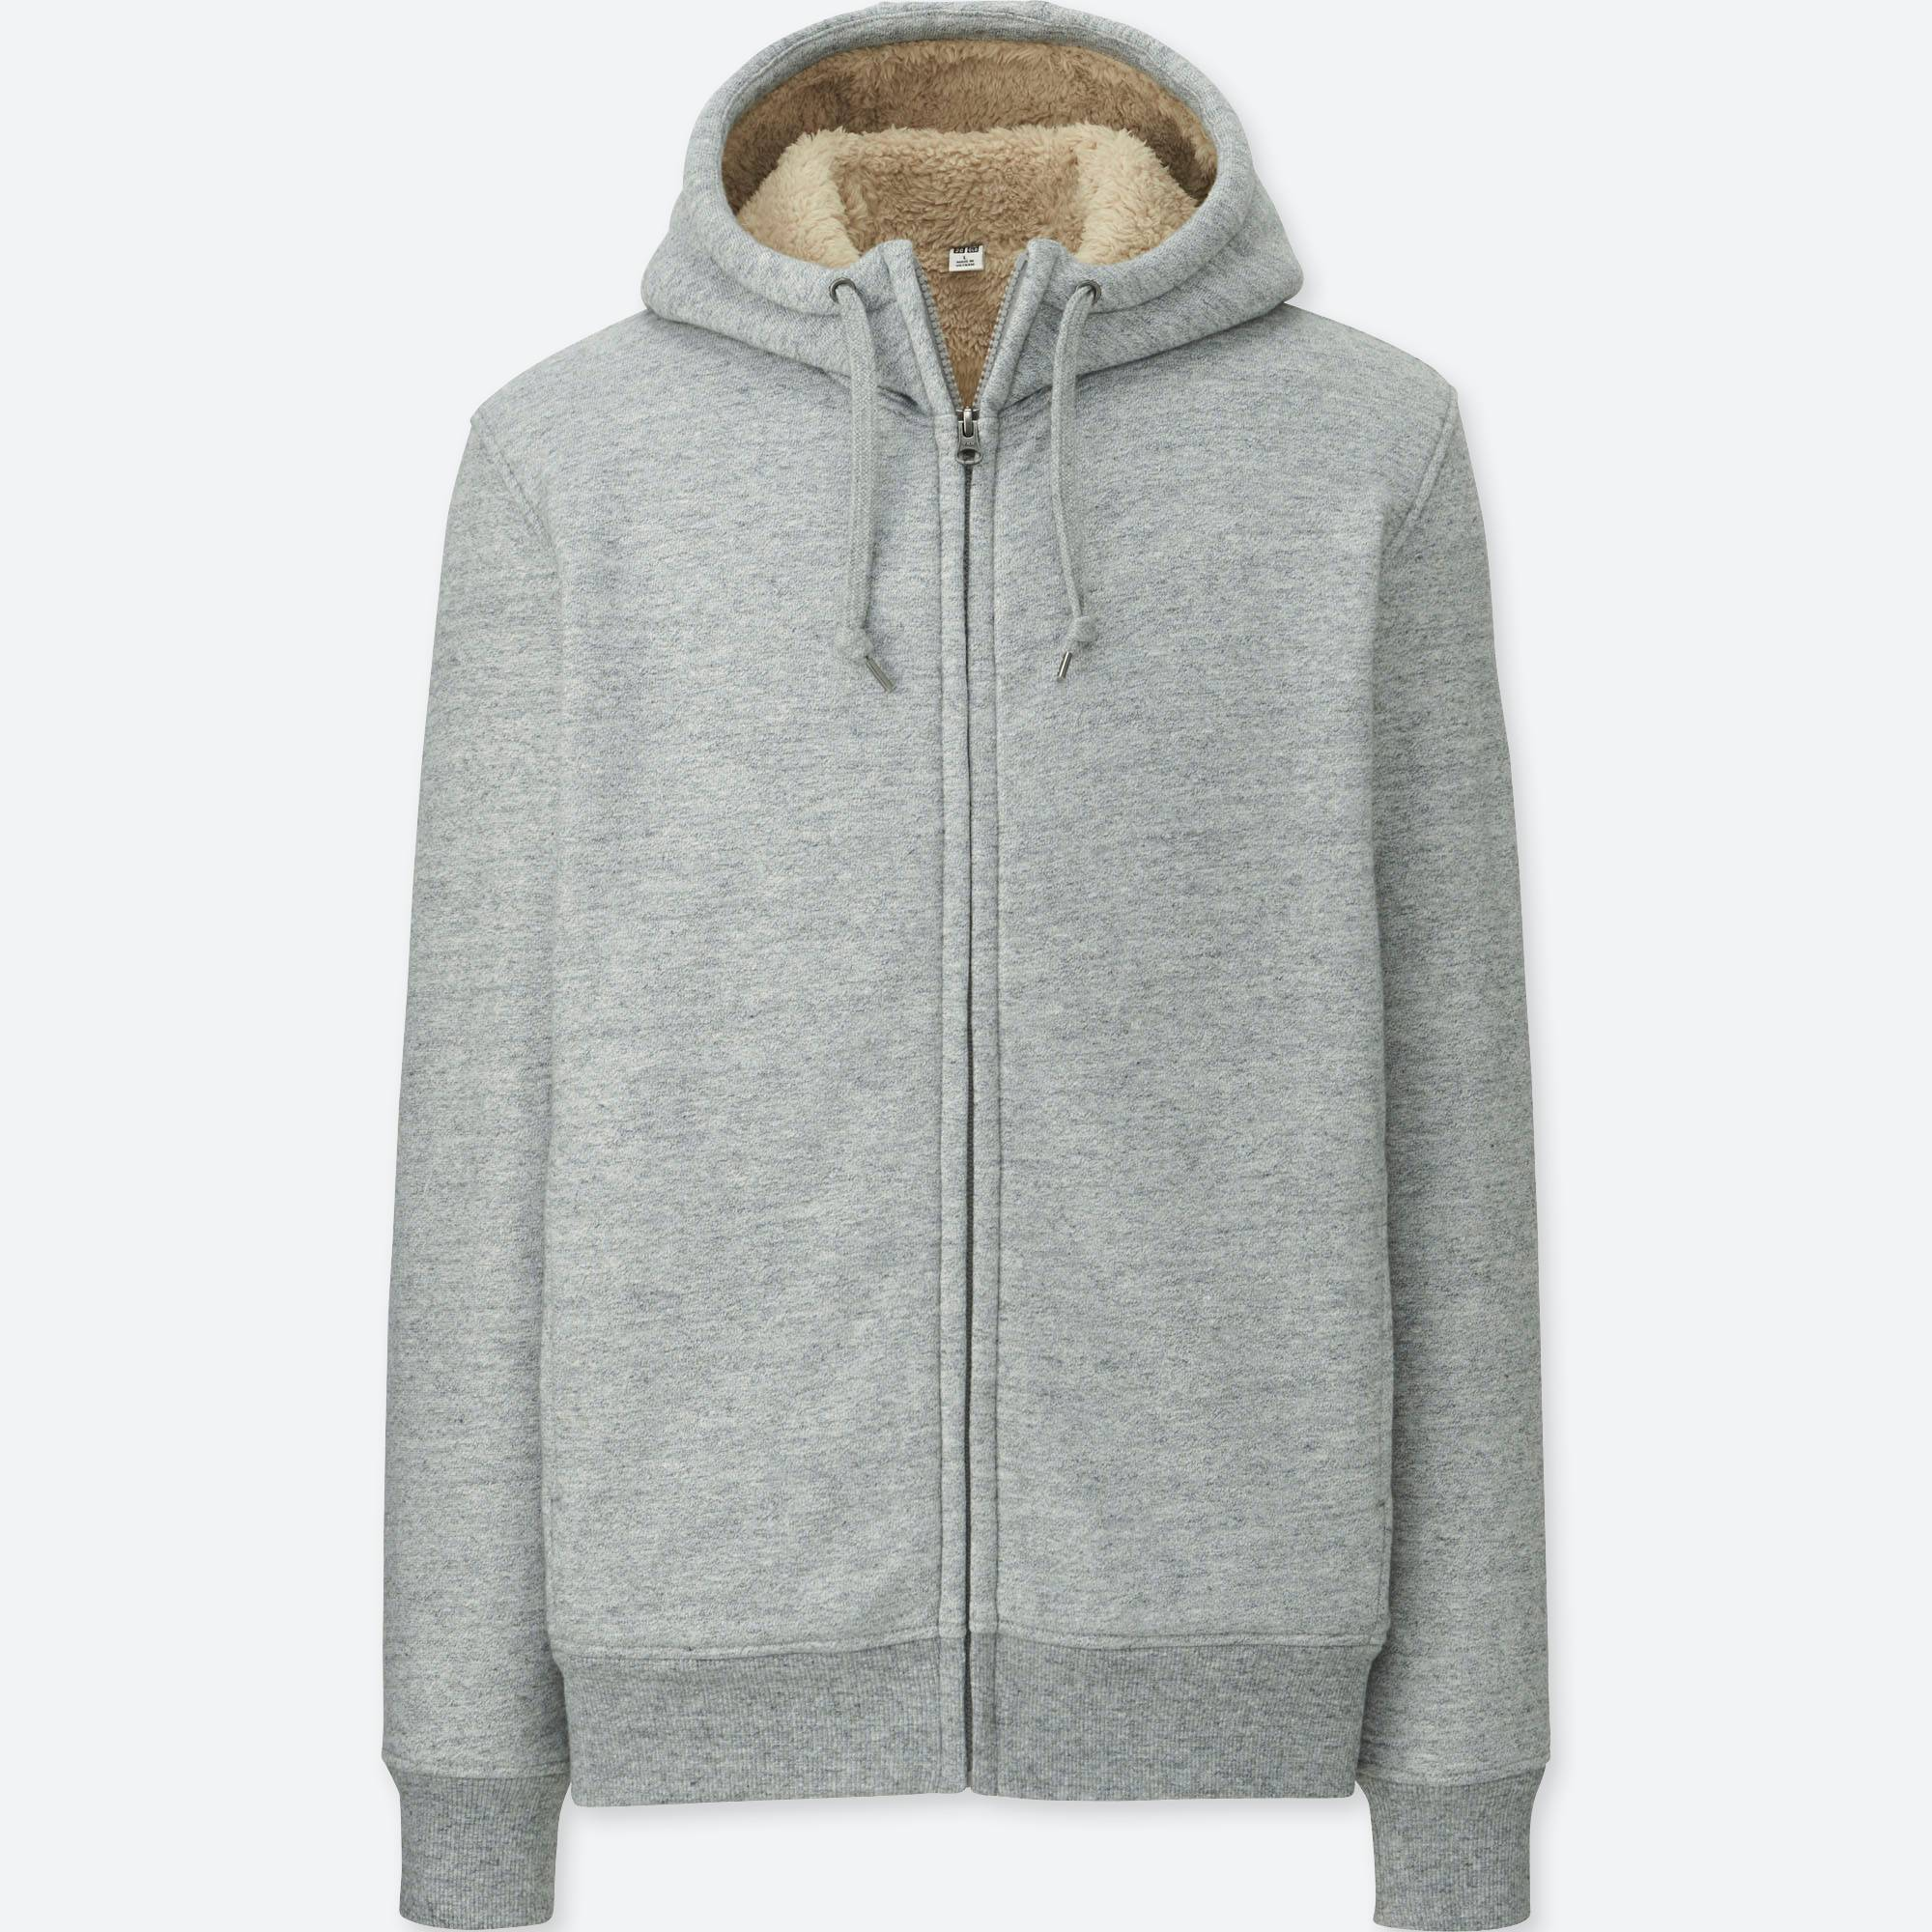 Men's Sweatshirts and Sweatpants | UNIQLO US